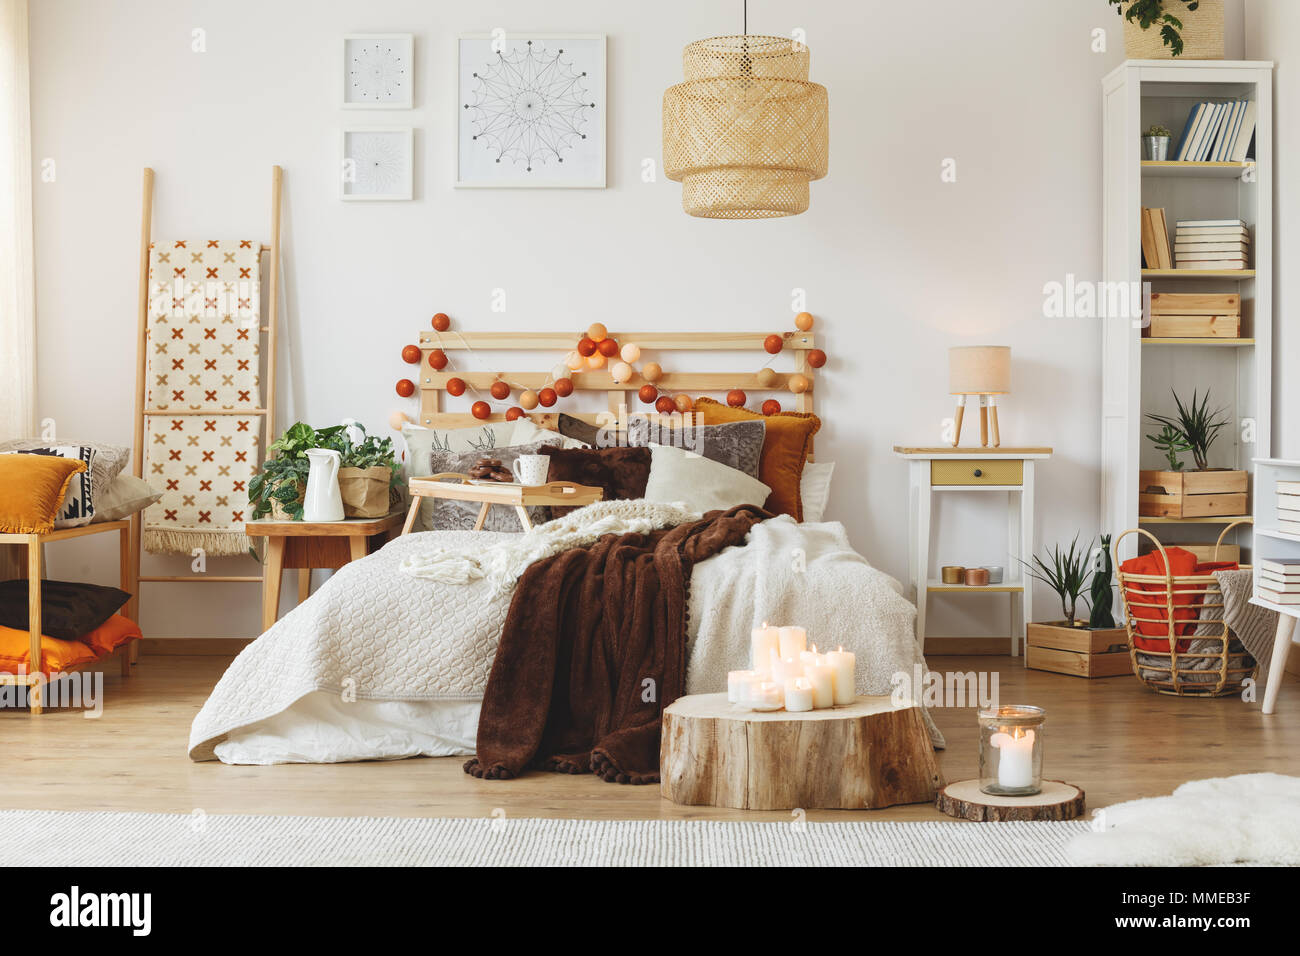 Cozy spacious fully furnished room with big messy bed - Stock Image